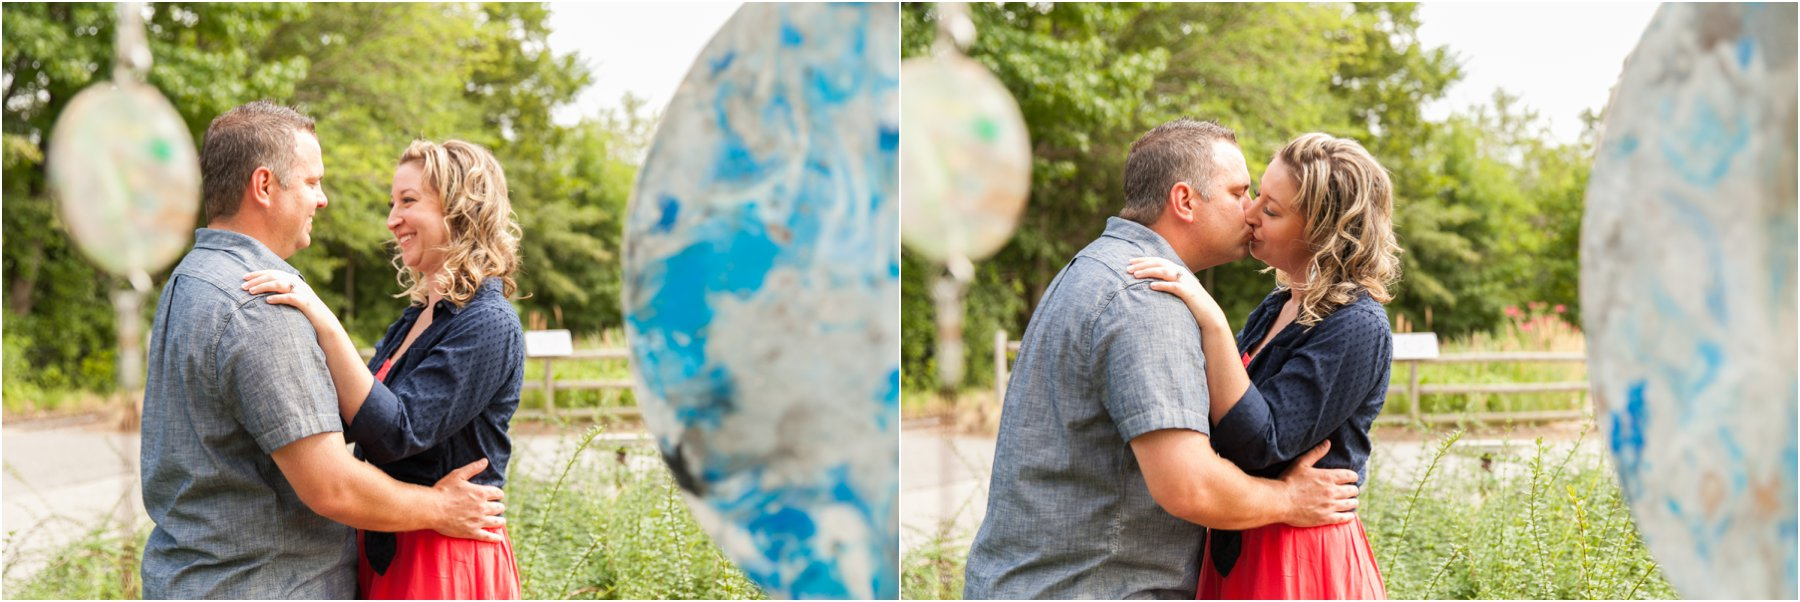 Nofolk_Zoo_engagement_photography_virginia_Jessica_ryan_photography_0132